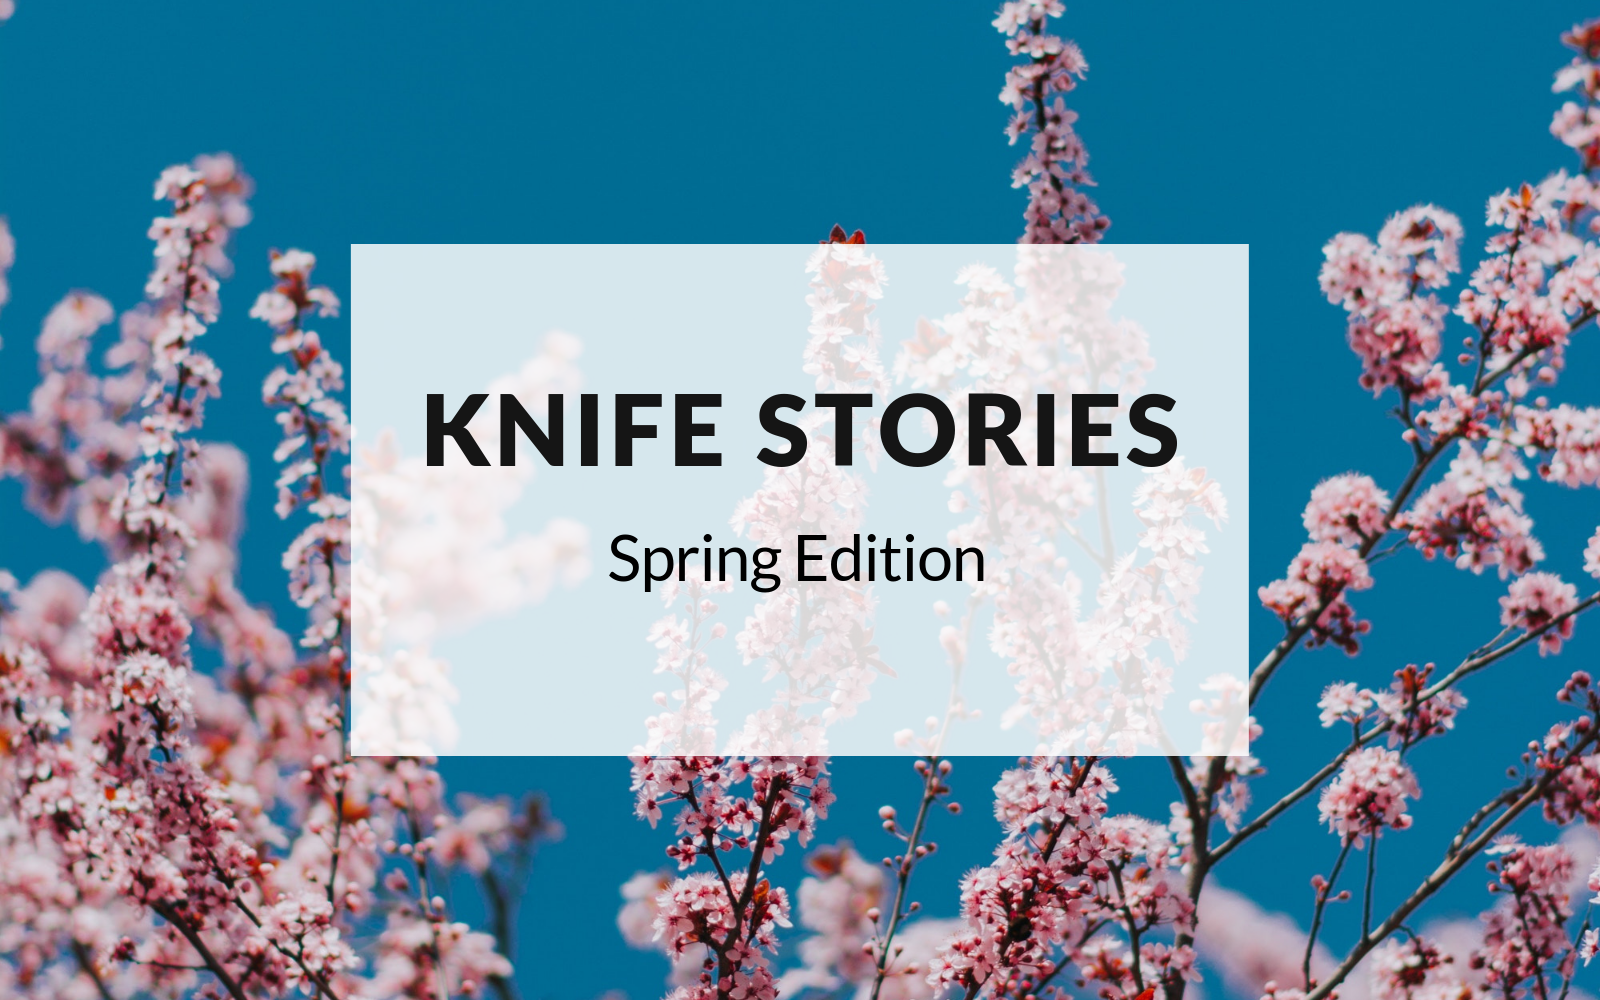 Knife Stories Spring Edition